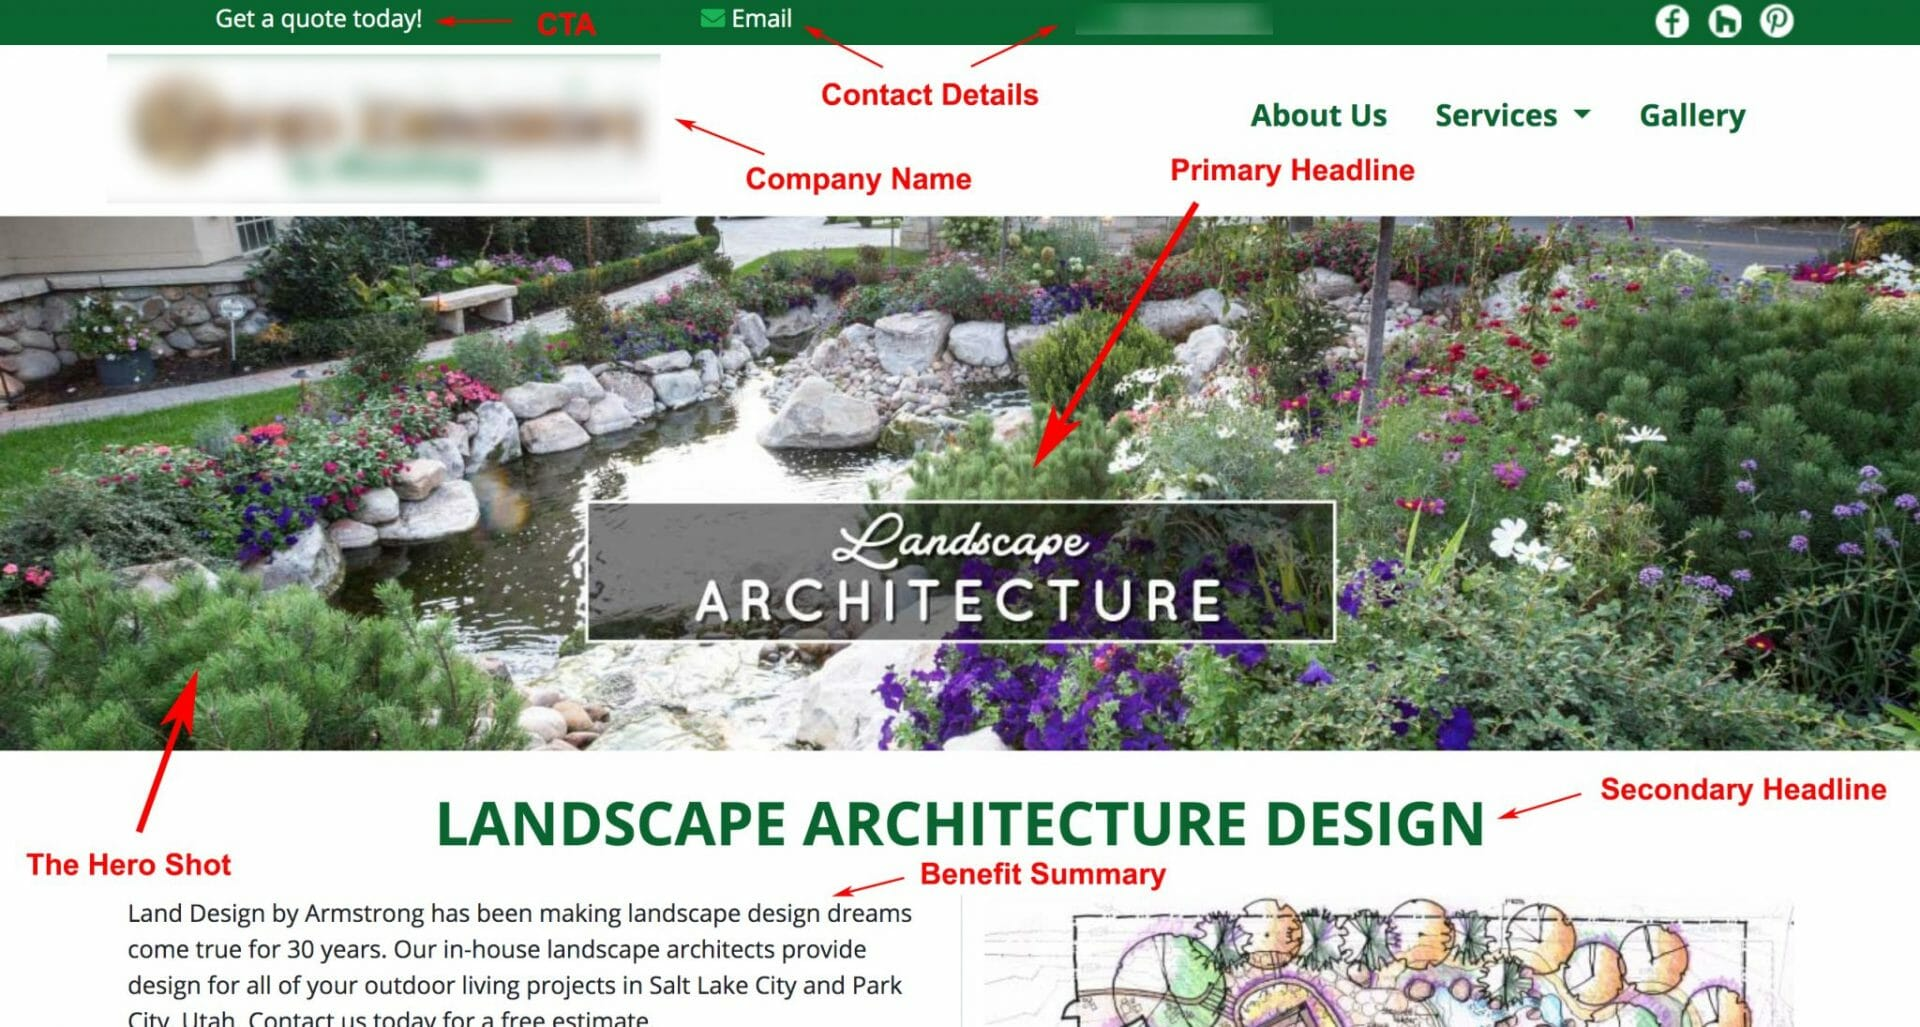 Example of a Landing Page